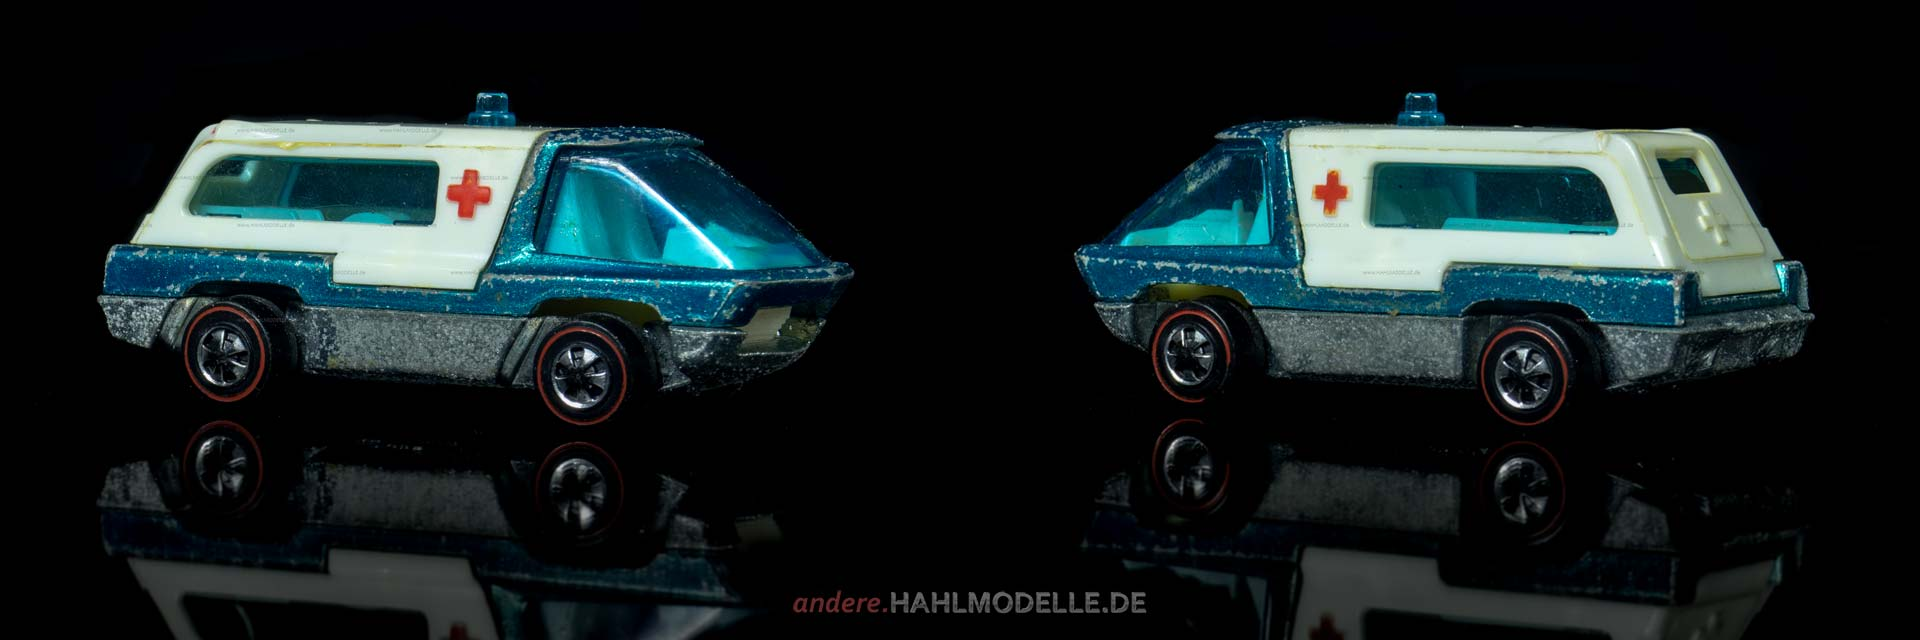 """Ambulance"" 